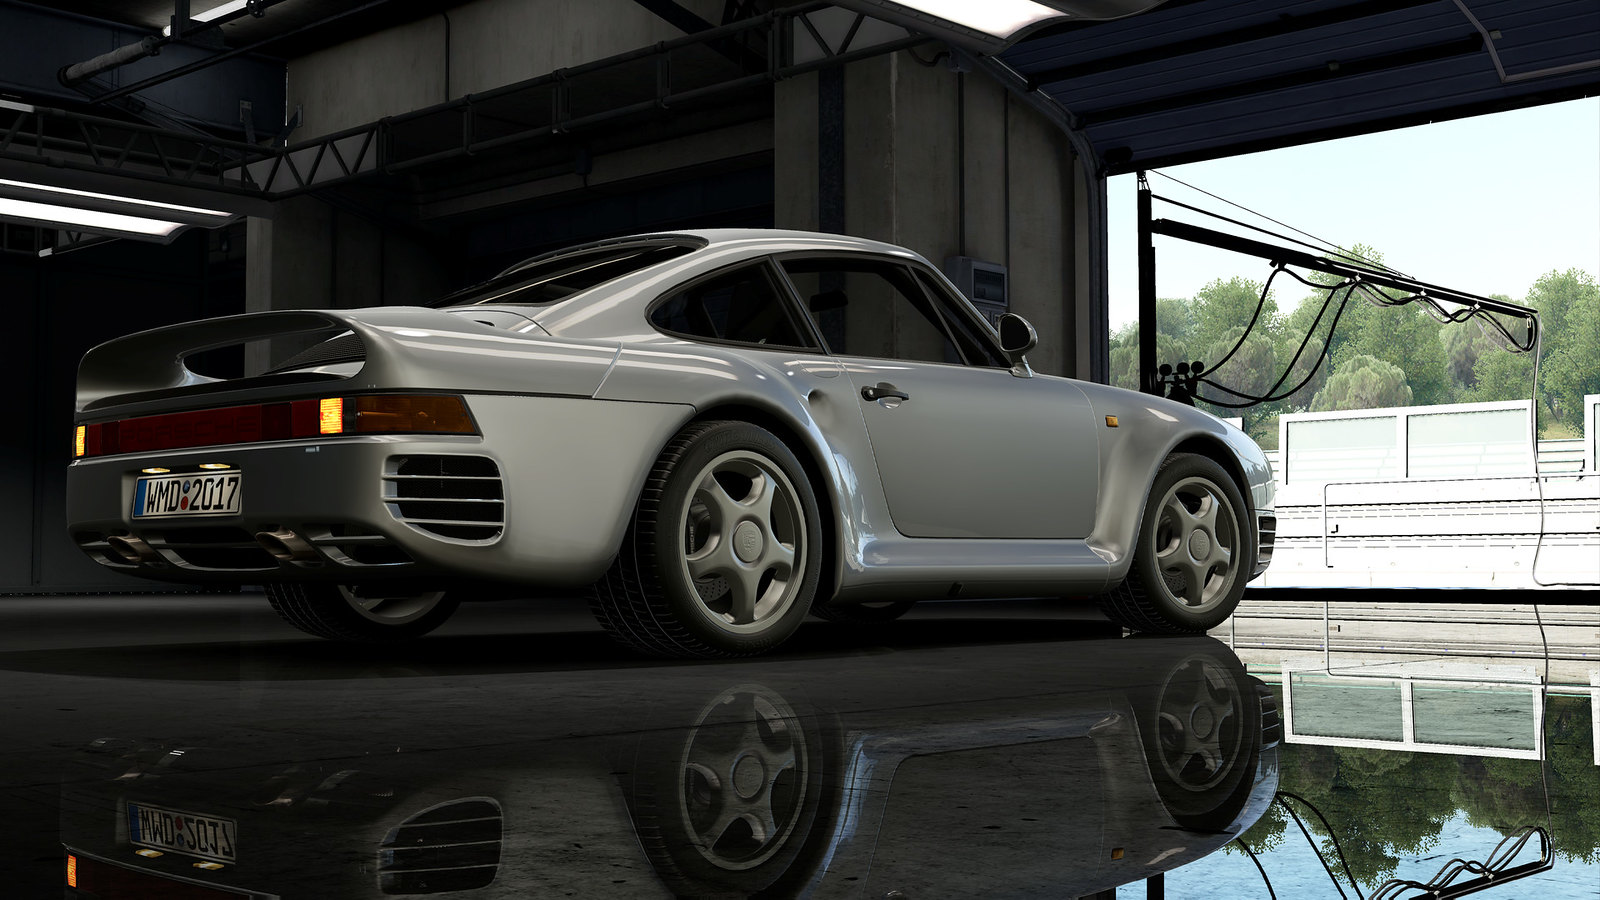 Project-CARS-2-Porsche-Legends-Pack-Porsche-959-S